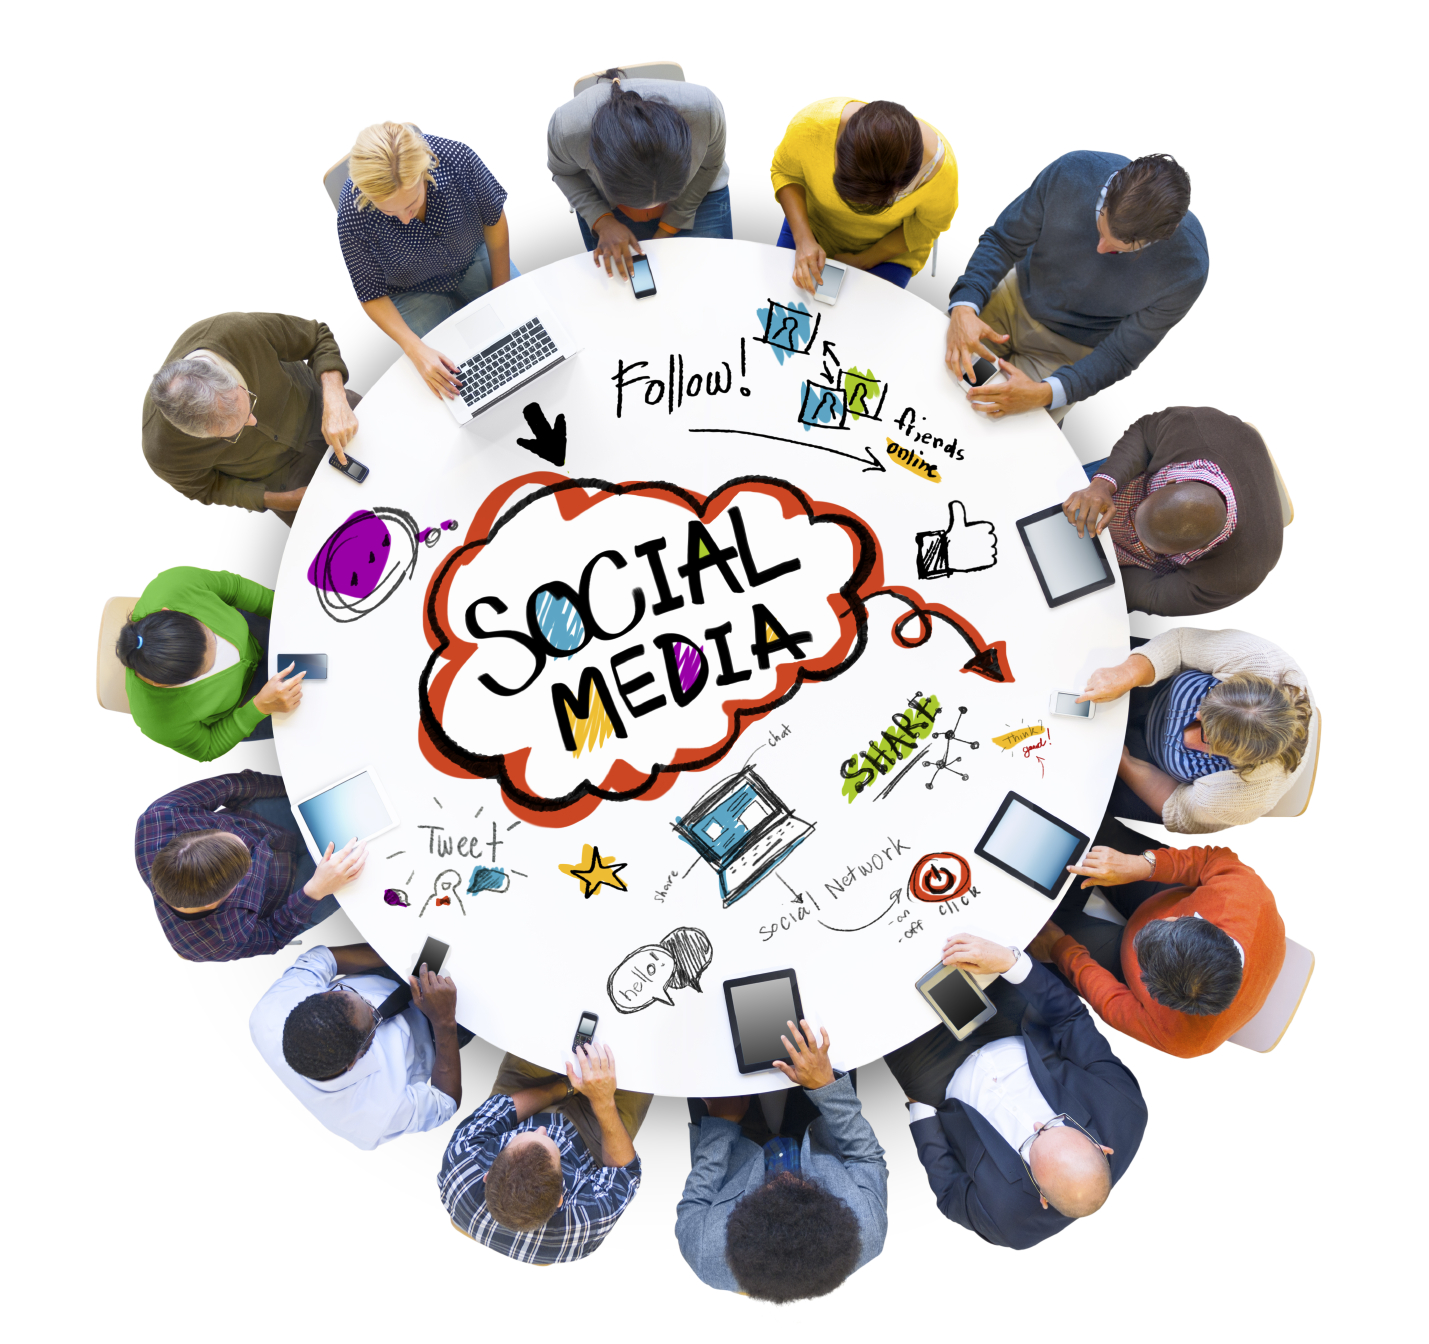 Social media for business: A fad or a permanent shift in how we communicate?